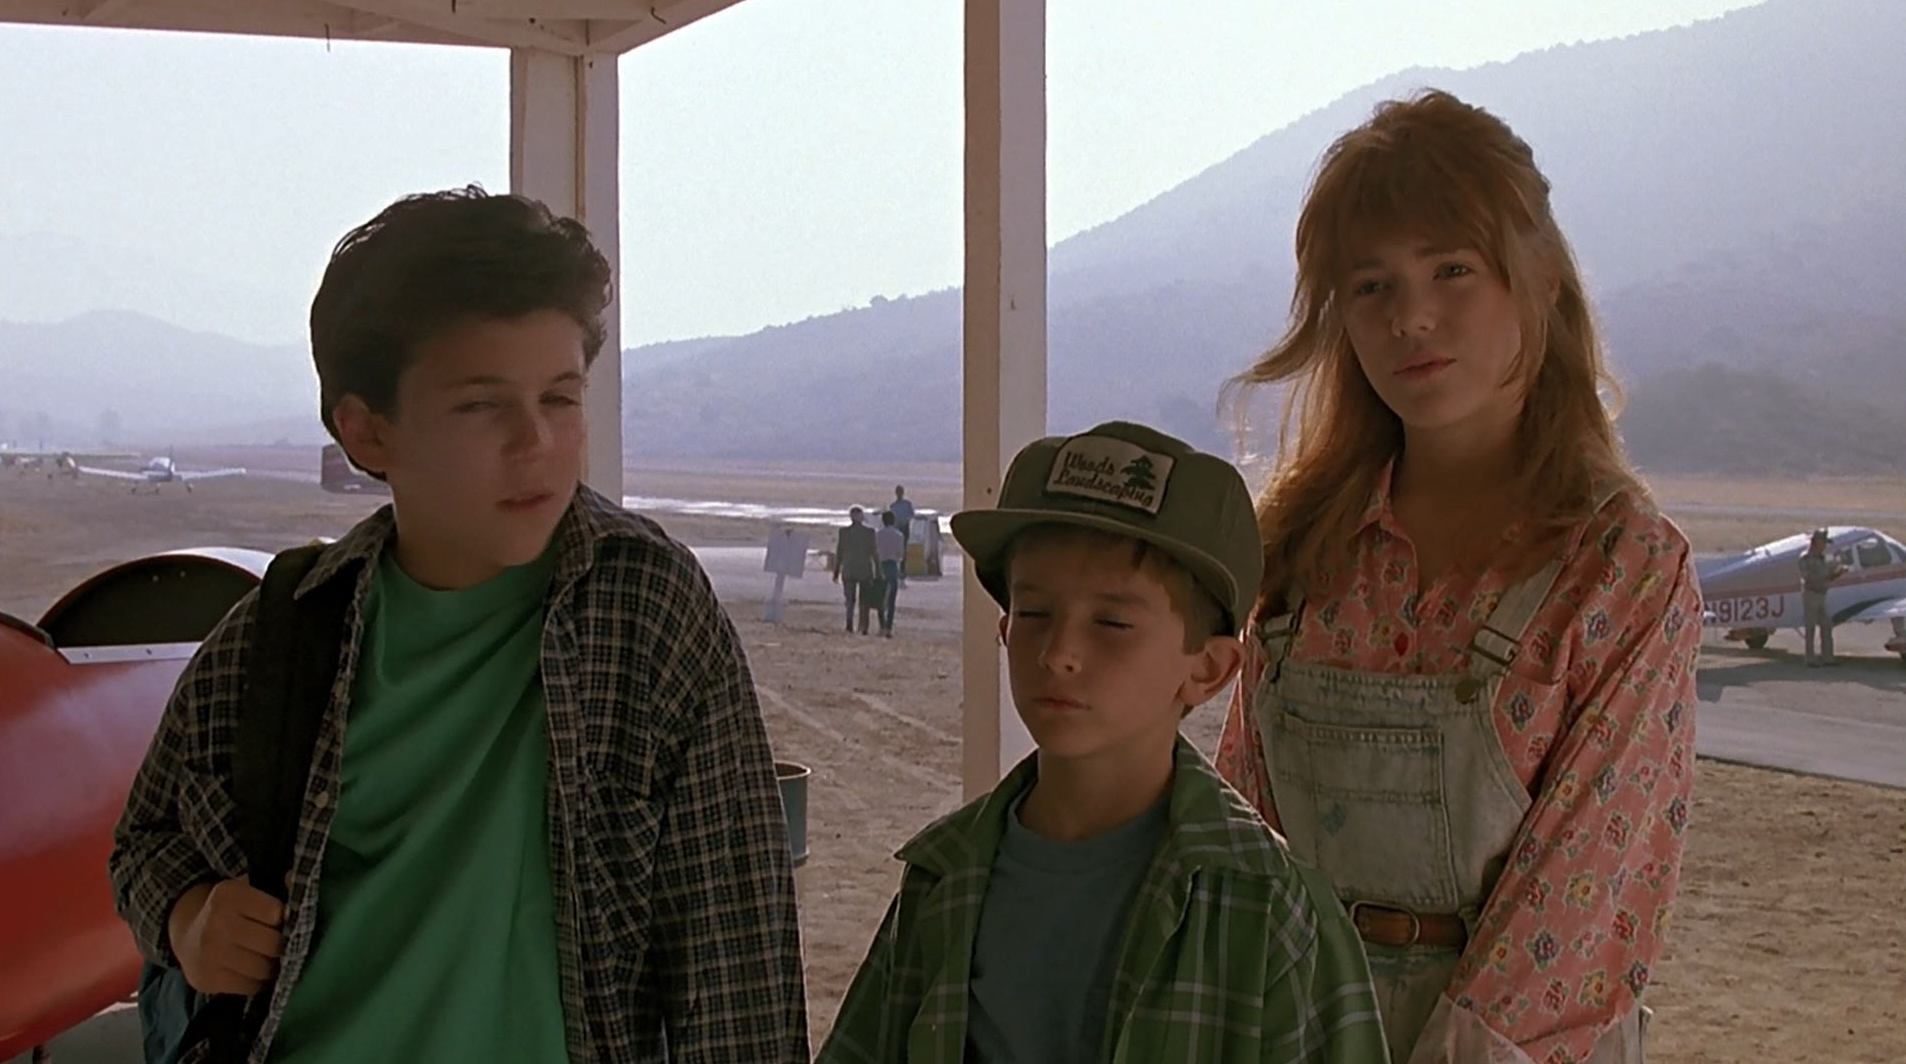 Corey, Jimmy, and Haley